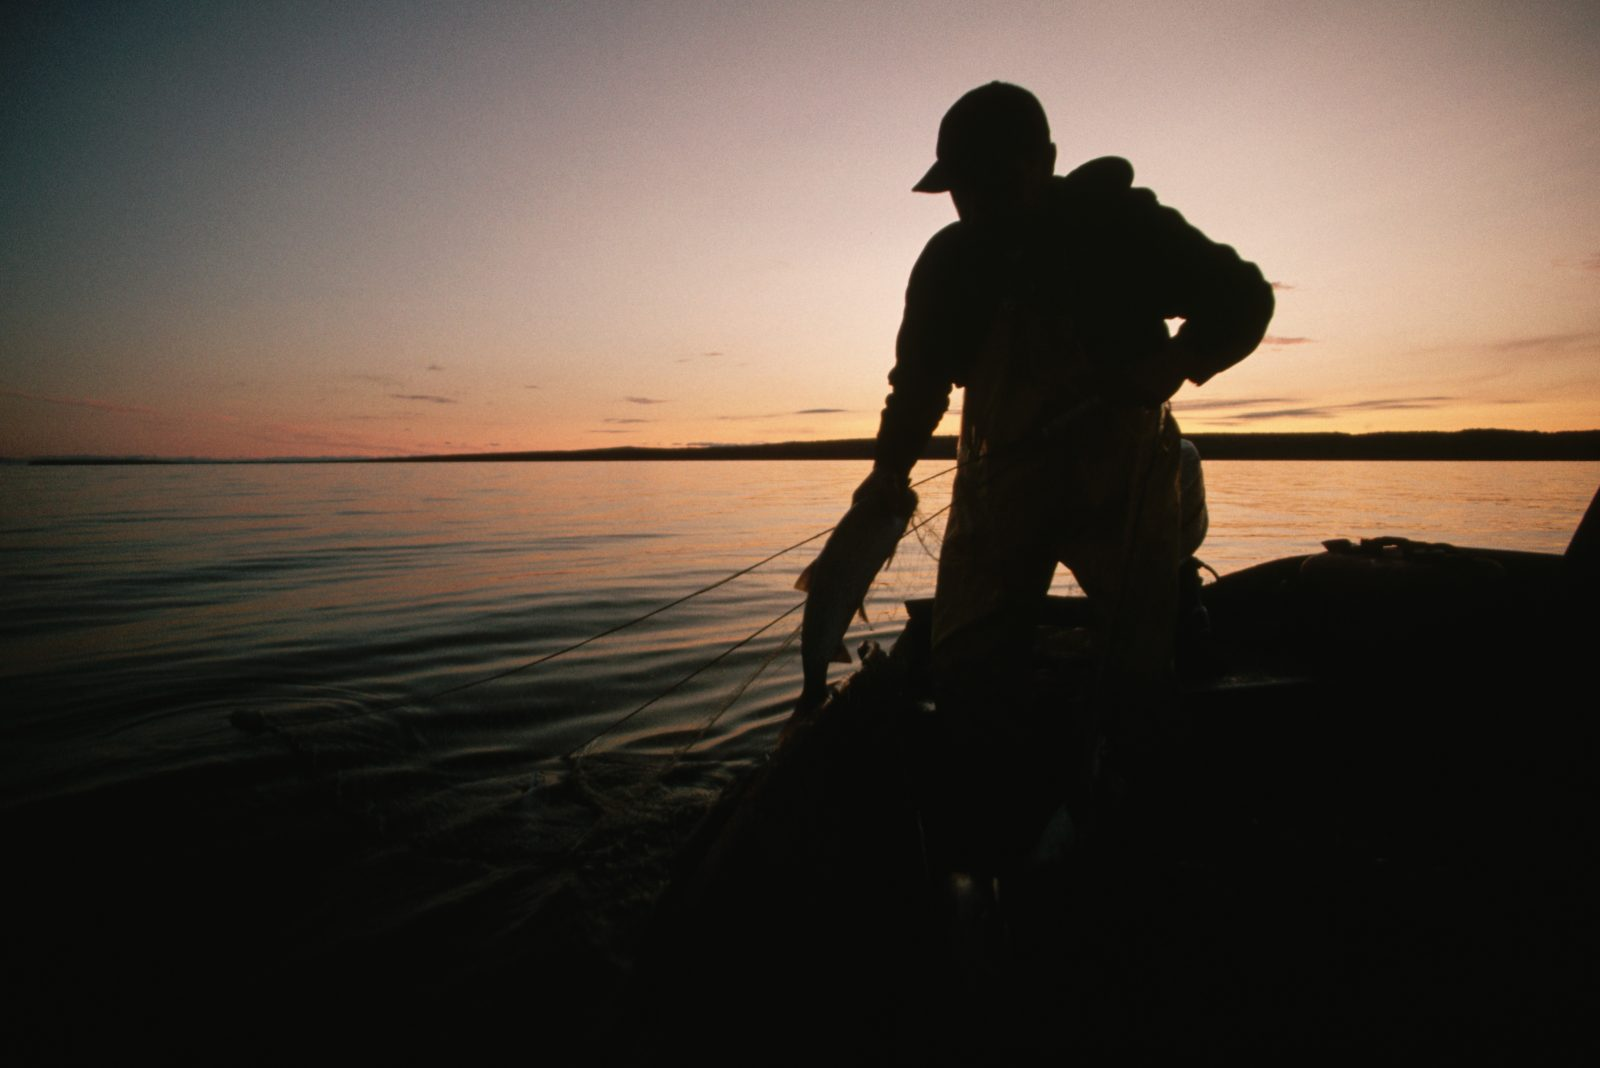 A silhouette of a Great Lake fisherman.